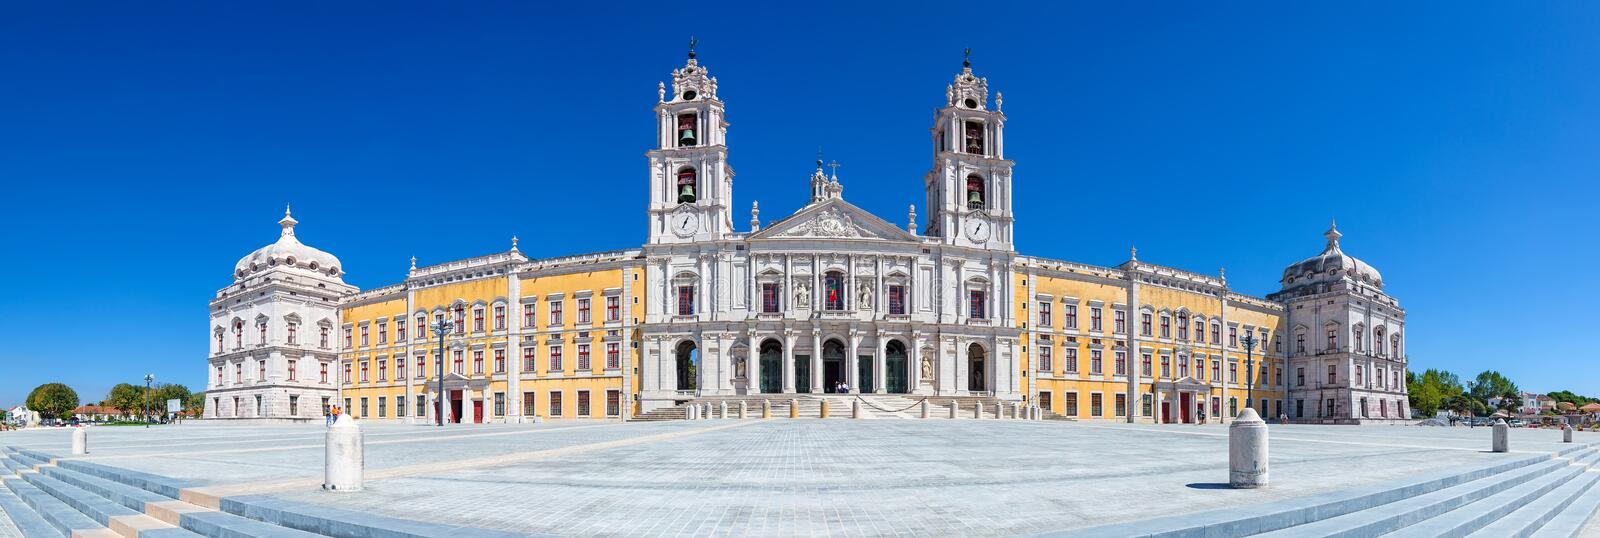 Mafra National Palace, Convent and Basilica in Portugal. Mafra, Portugal - September 02, 2014: Tourists stroll in front of the Mafra National Palace, Convent and stock photography